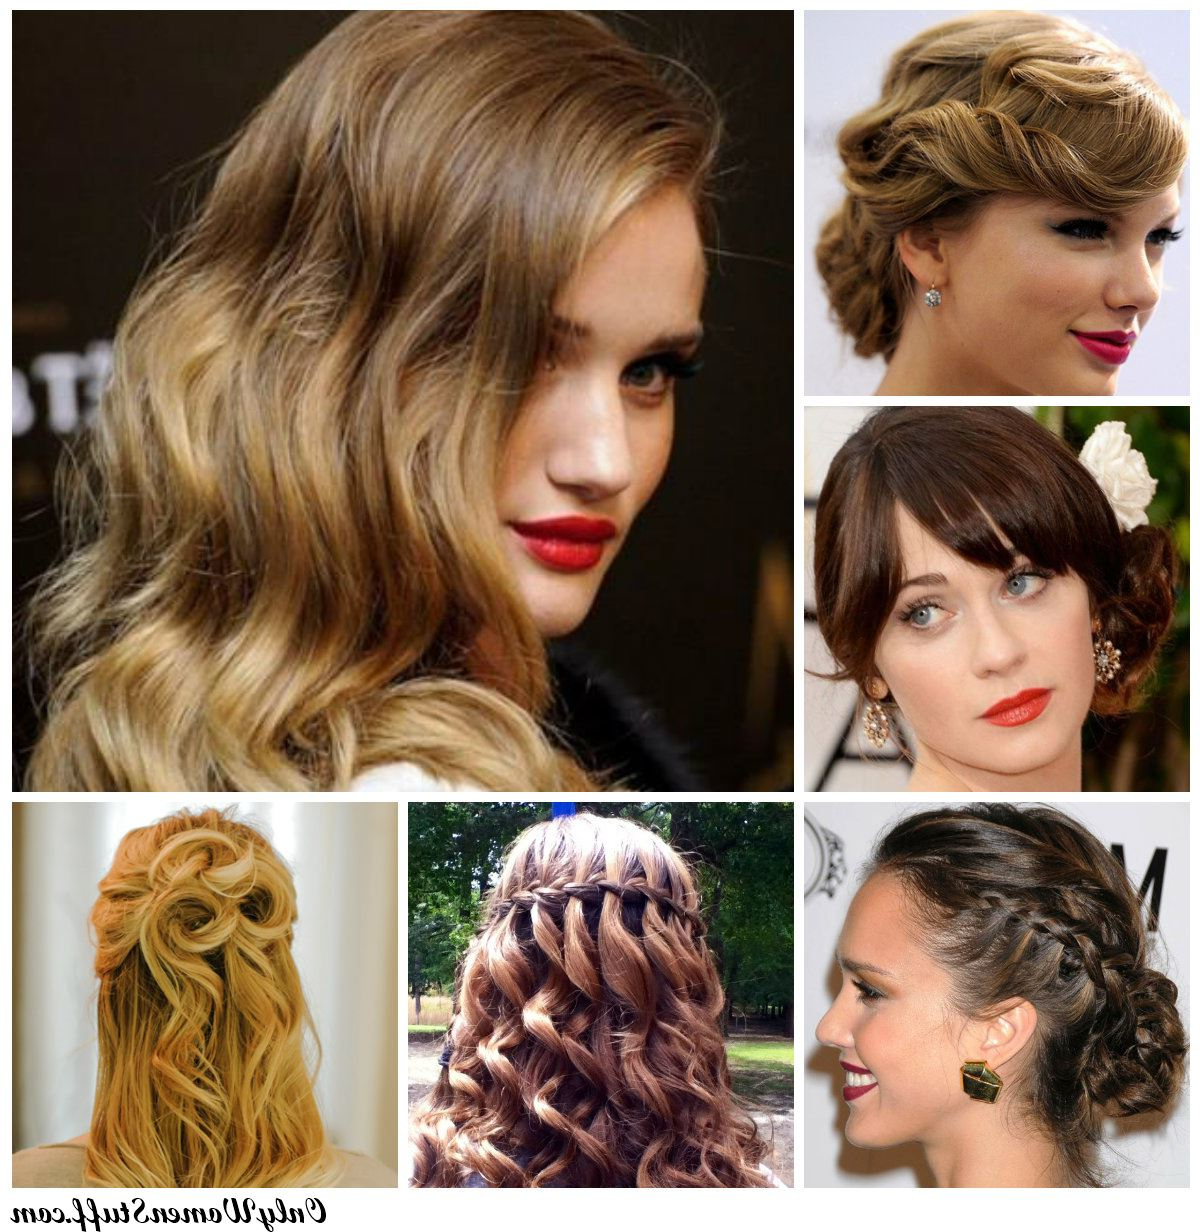 50+ Easy Prom Hairstyles & Updos Ideas (Stepstep) Inside Cute Hairstyles For Short Hair For Homecoming (View 19 of 25)